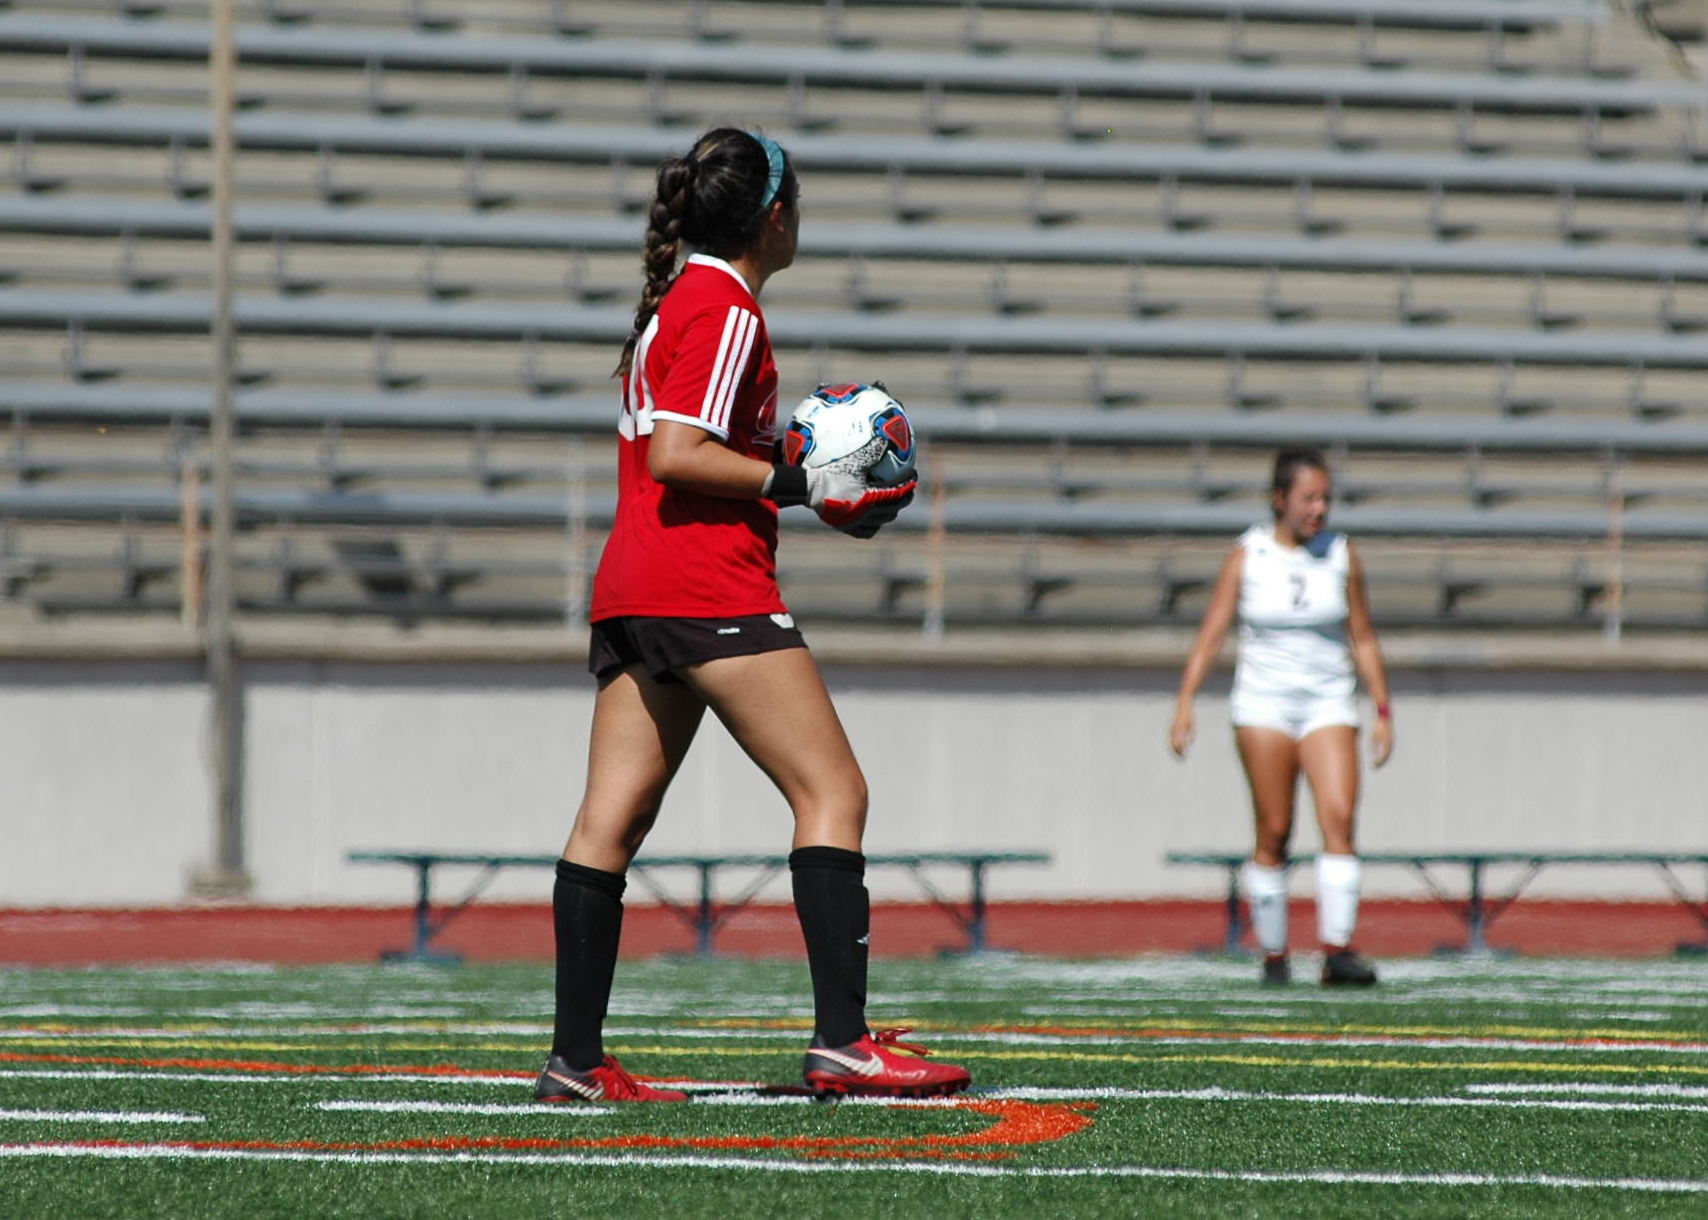 Women's Soccer: Mounties Narrowly Edge Out Owls in 1-0 Battle